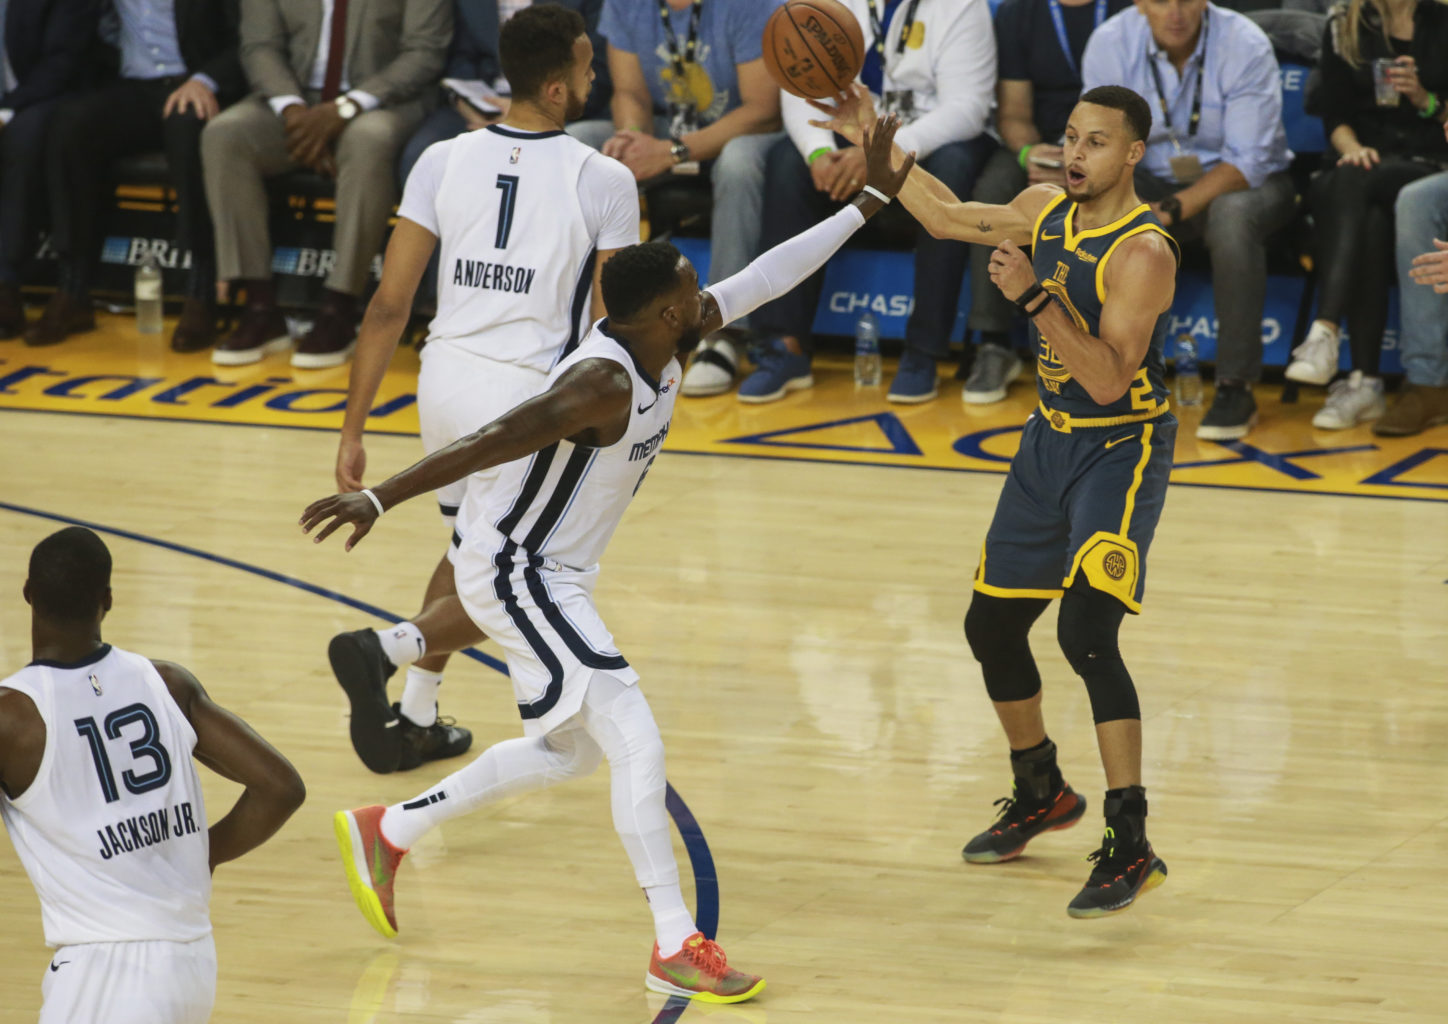 Stephen Curry (30) of the Golden State Warriors passes the ball around before Shelving Mack (6) of the Memphis Grizzlies tries to get block the play during first quarter of the game on December 17, 2018 at Oracle Arena in Oakland, California. (Chris Victorio